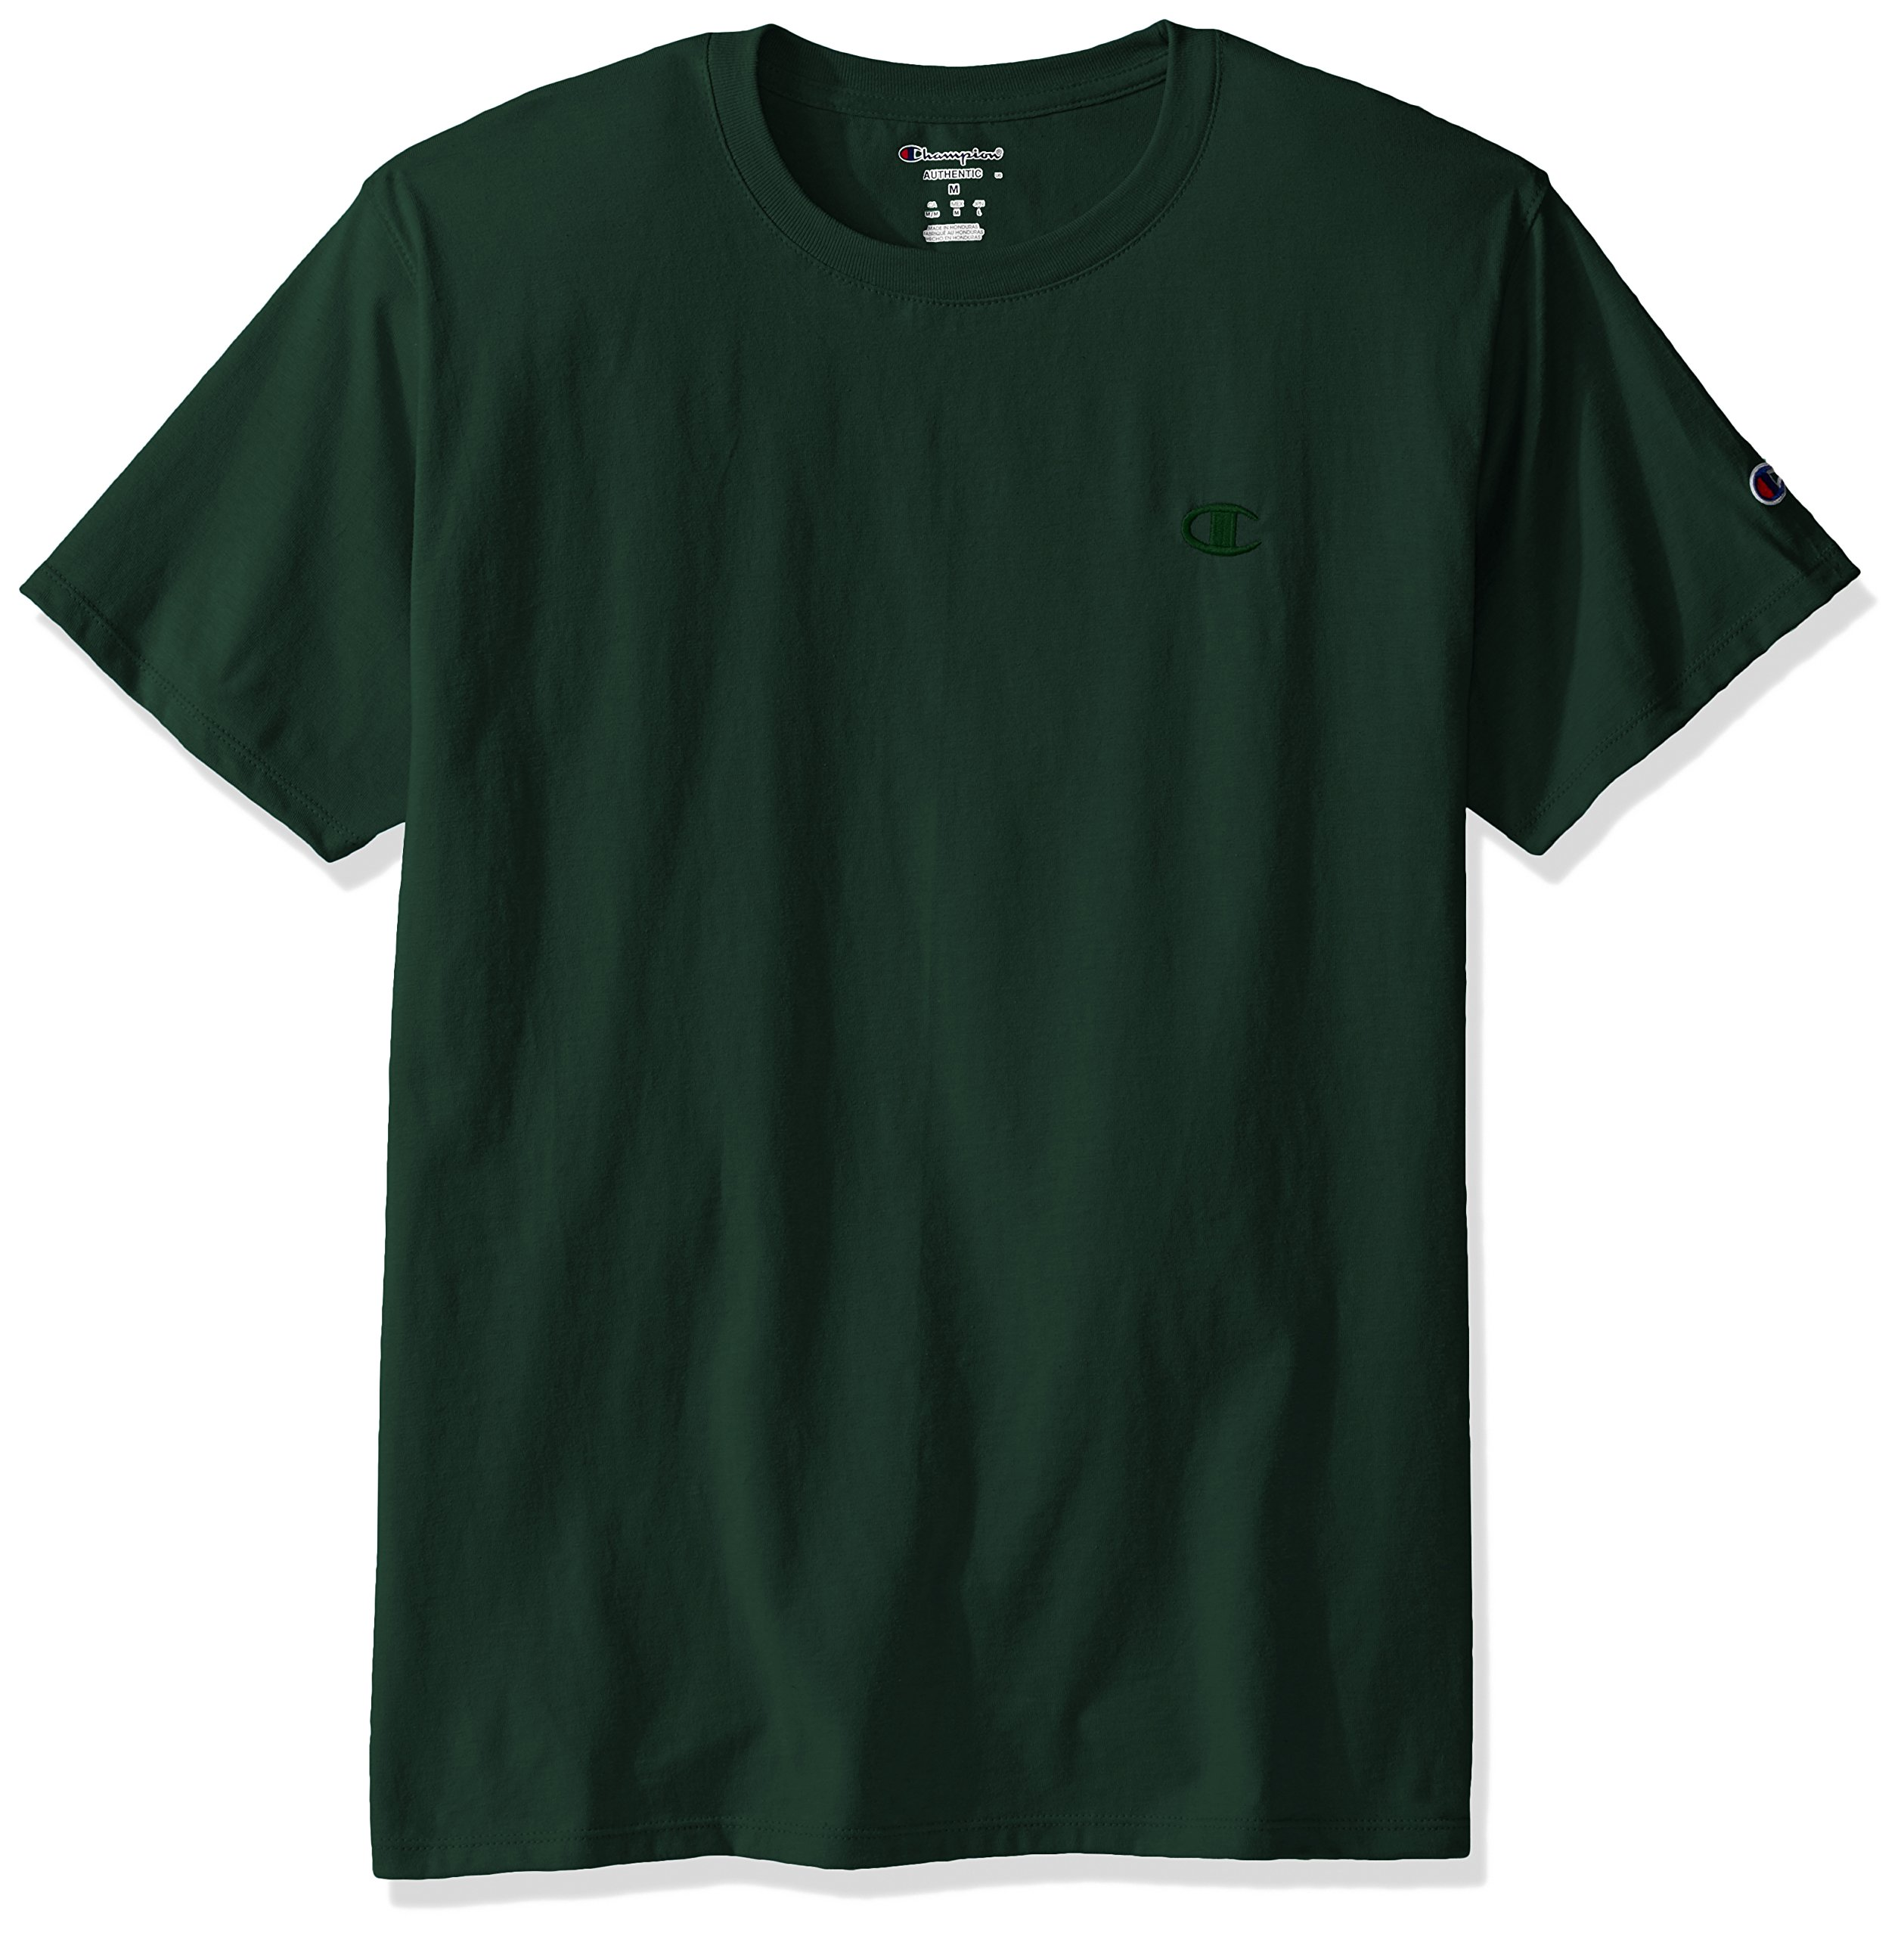 Champion Men's Classic Jersey T-Shirt, Dark Green, S by Champion